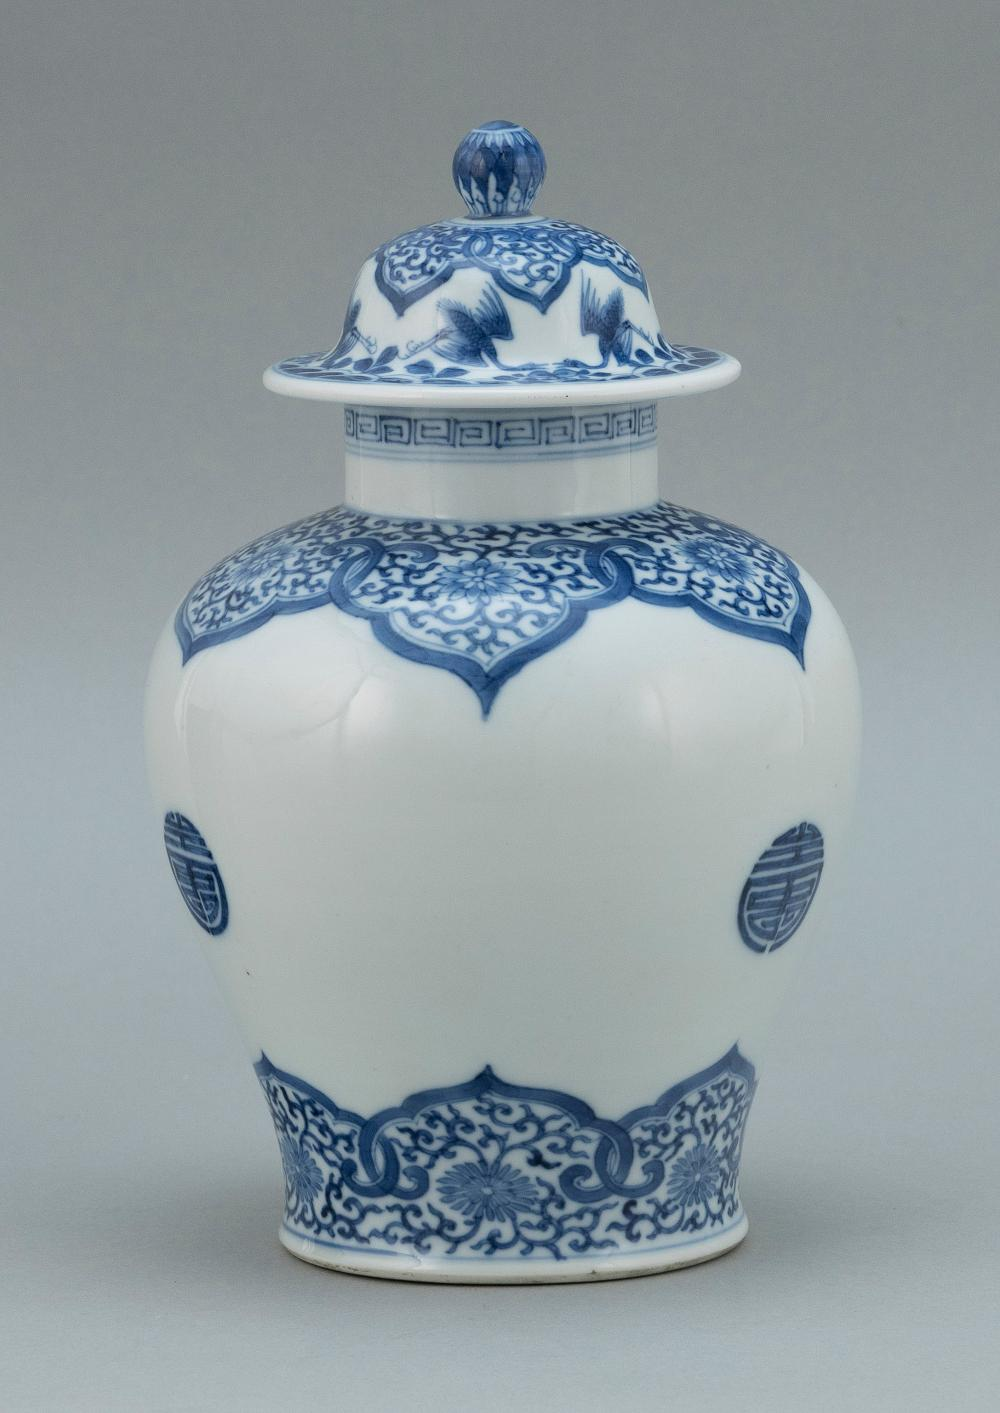 CHINESE BLUE AND WHITE PORCELAIN COVERED JAR 19th Century Height 9